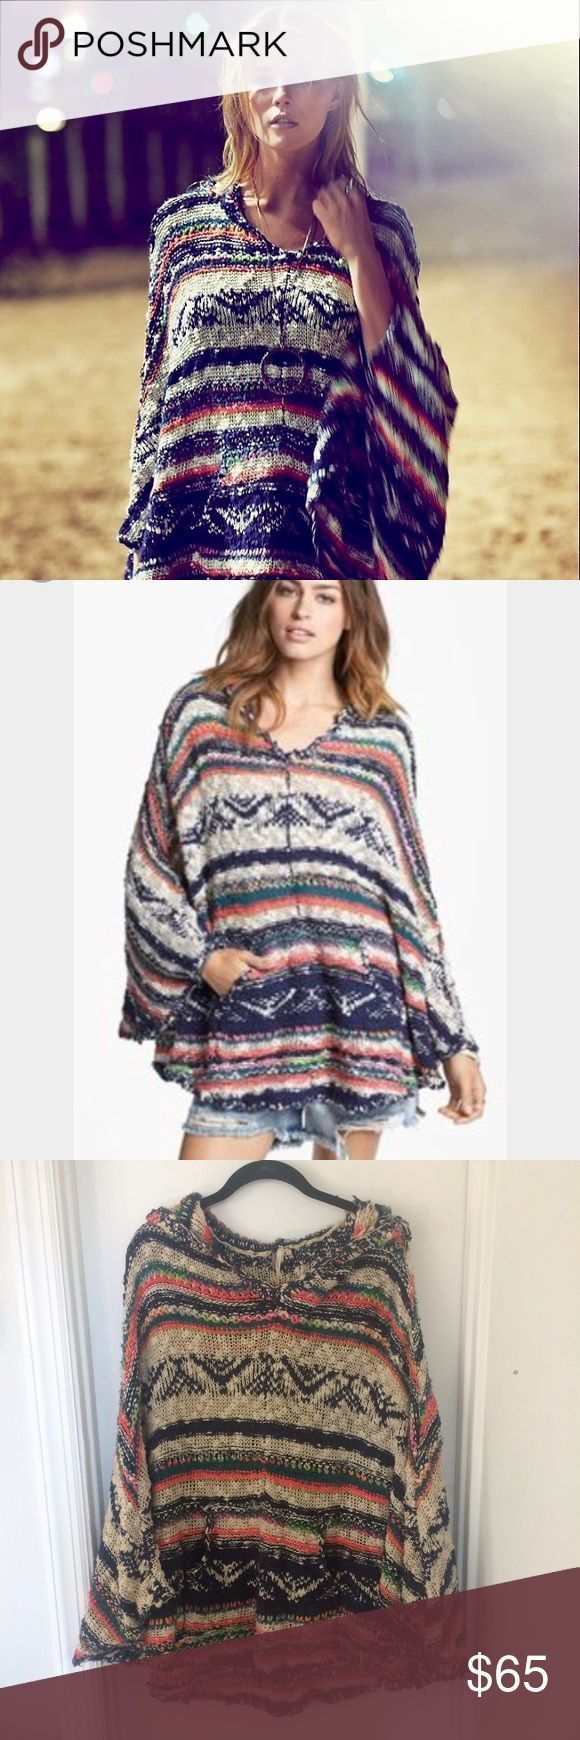 Free People Open Weave Blanket Poncho Free People Open Weave Blanket Poncho with hood Free People Sweaters Shrugs & Ponchos